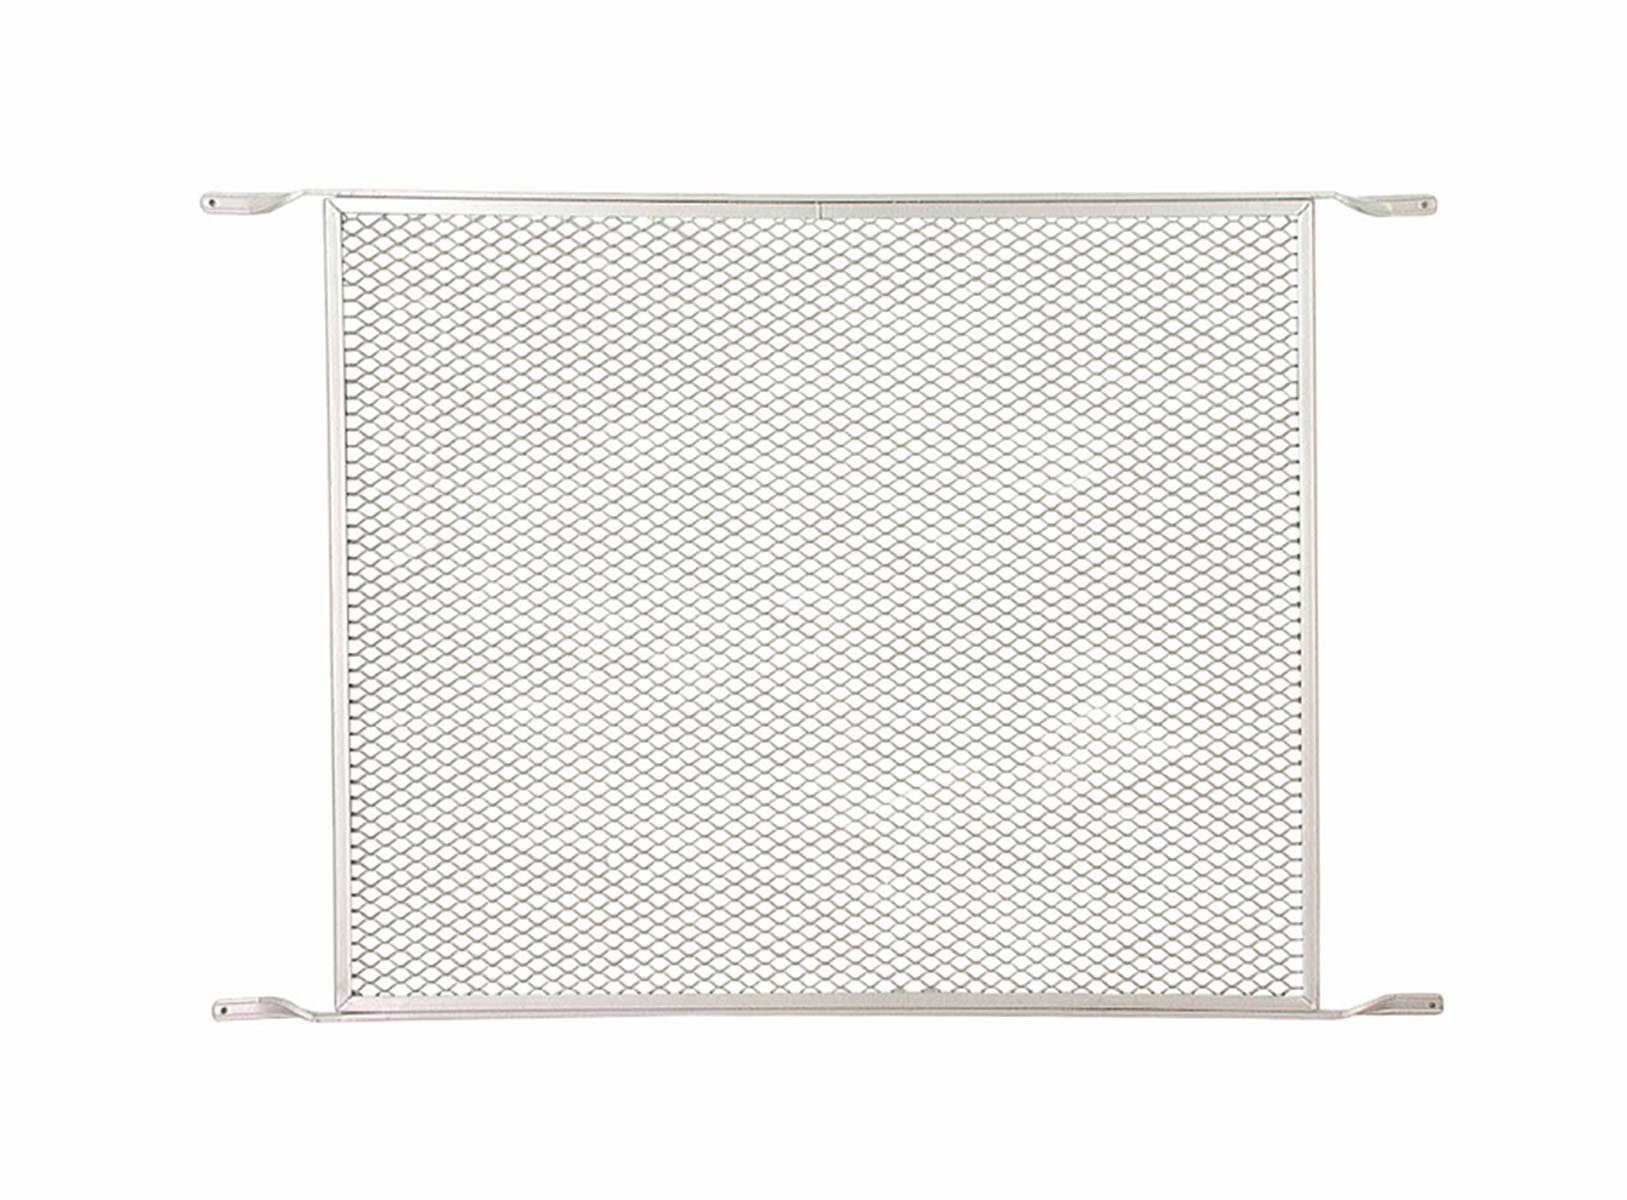 M-D Building Products 33340 Door Grille for 36 inch screen doors by M-D Building Products